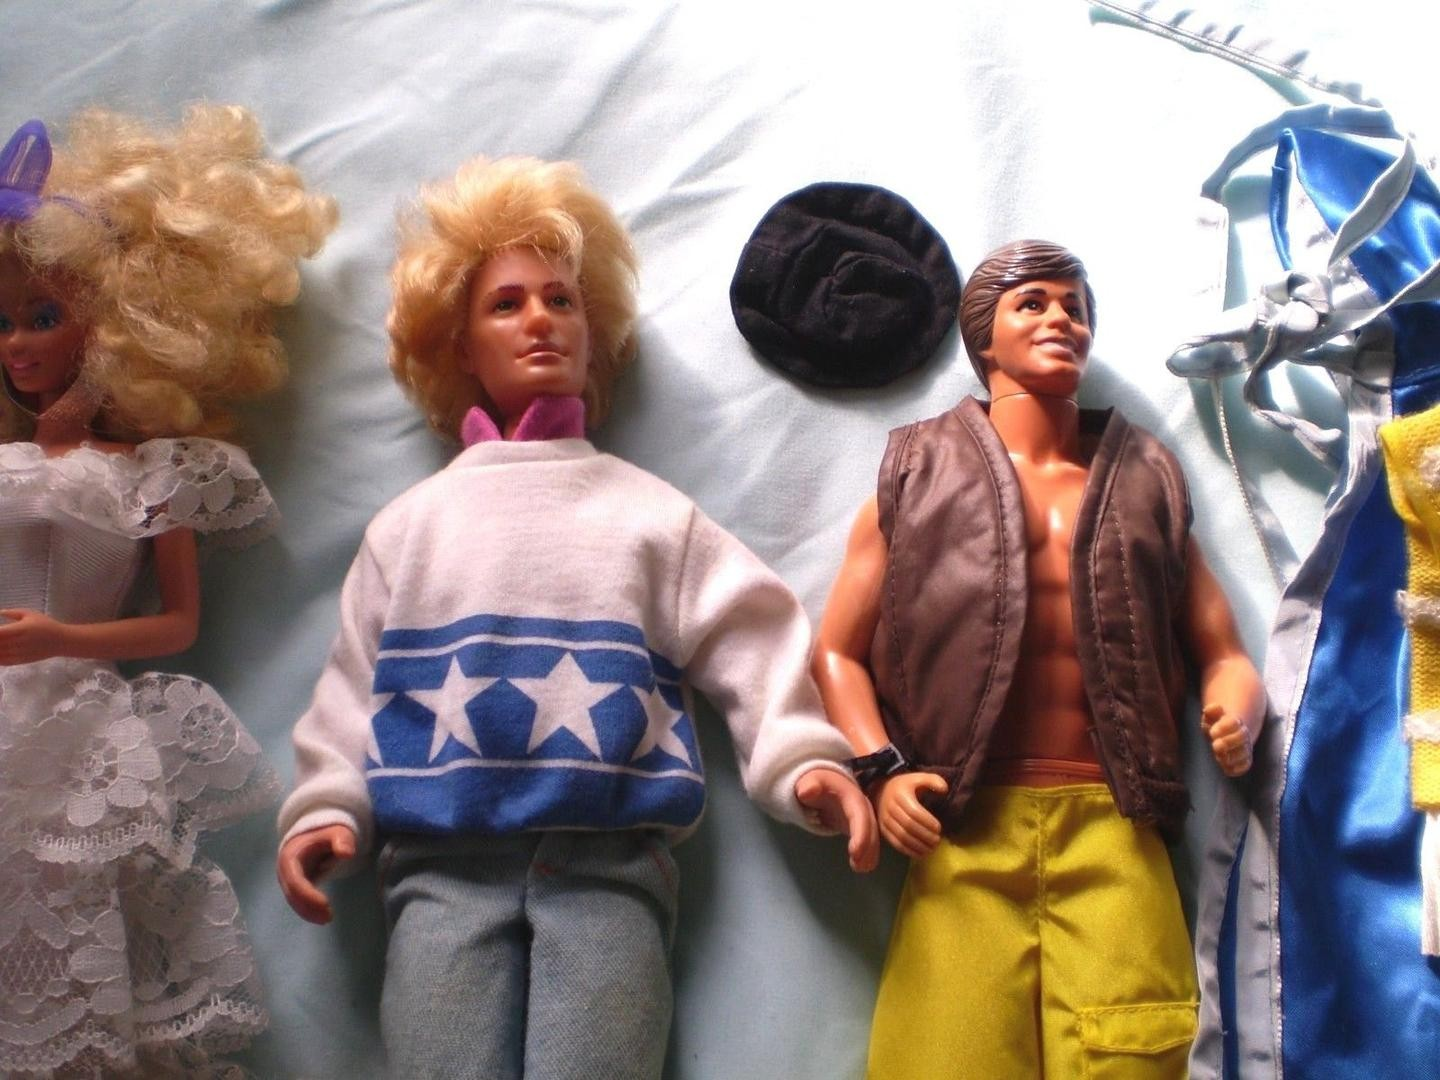 vintage-barbie-ken-gi-joe-doll-lot_1_e3cab1413316e4ce9f7123d4154aa799.jpg